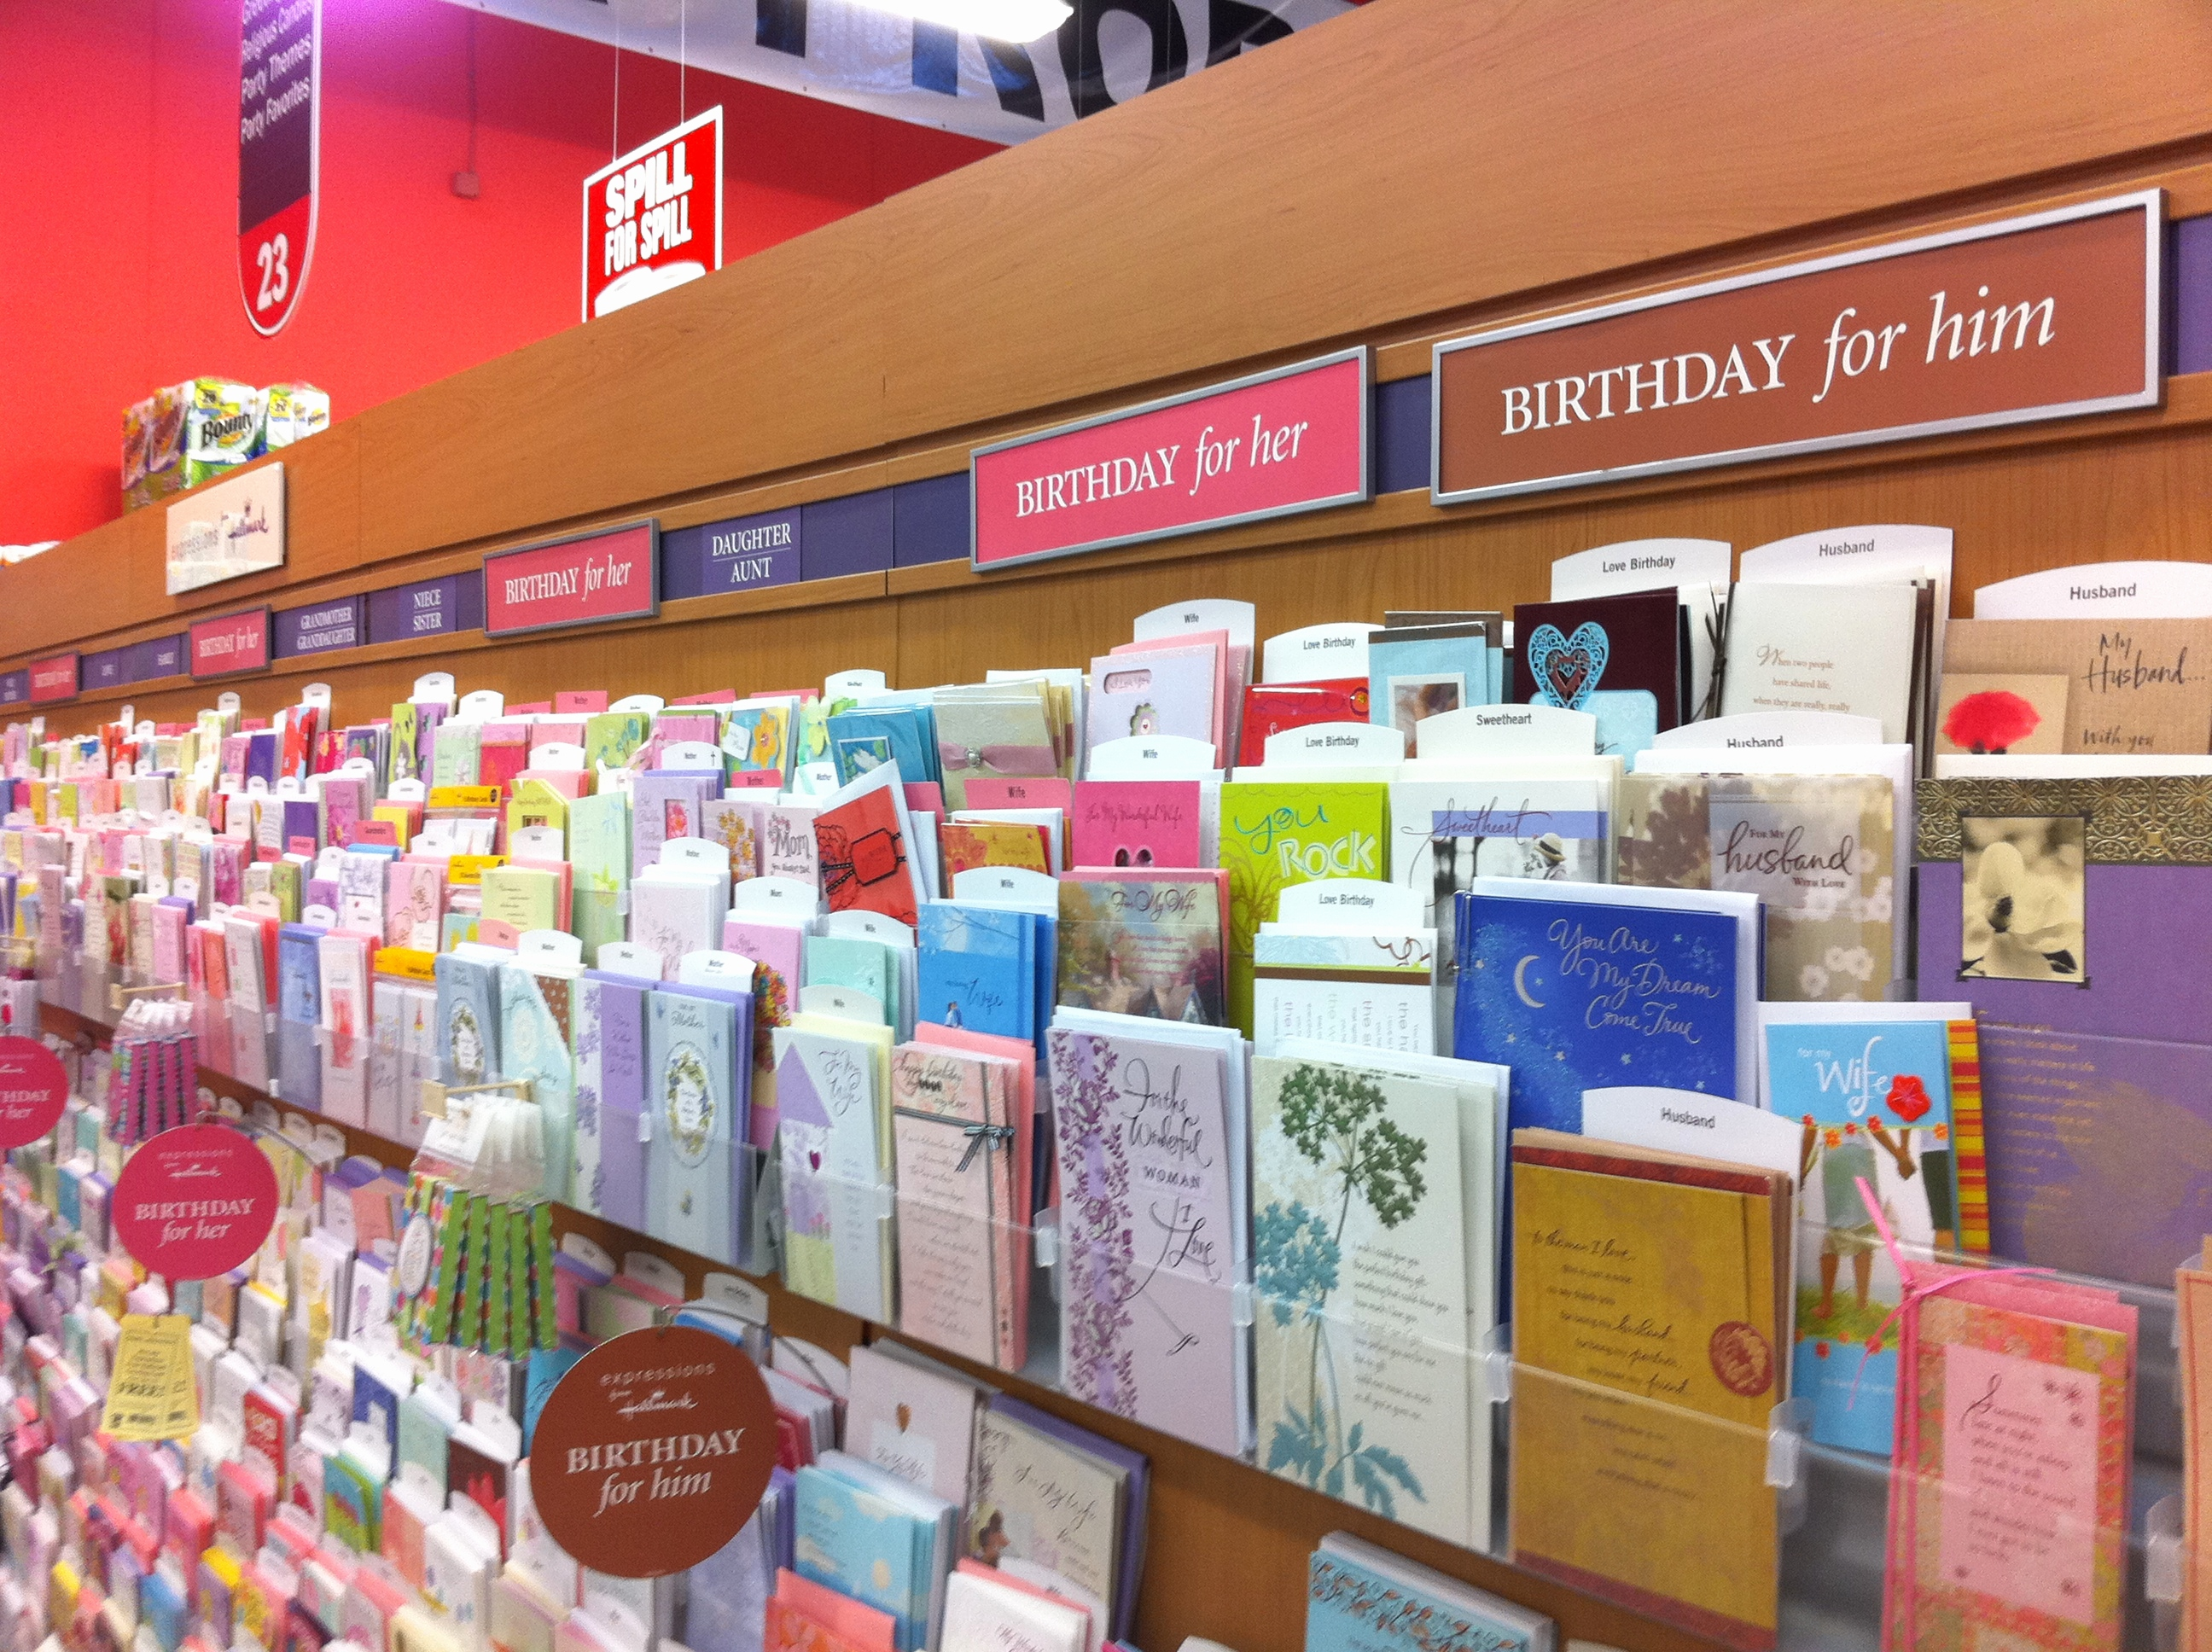 birthday card store near me ; birthday-cards-near-me-best-of-friendship-greeting-card-store-in-conjunction-with-greeting-card-of-birthday-cards-near-me